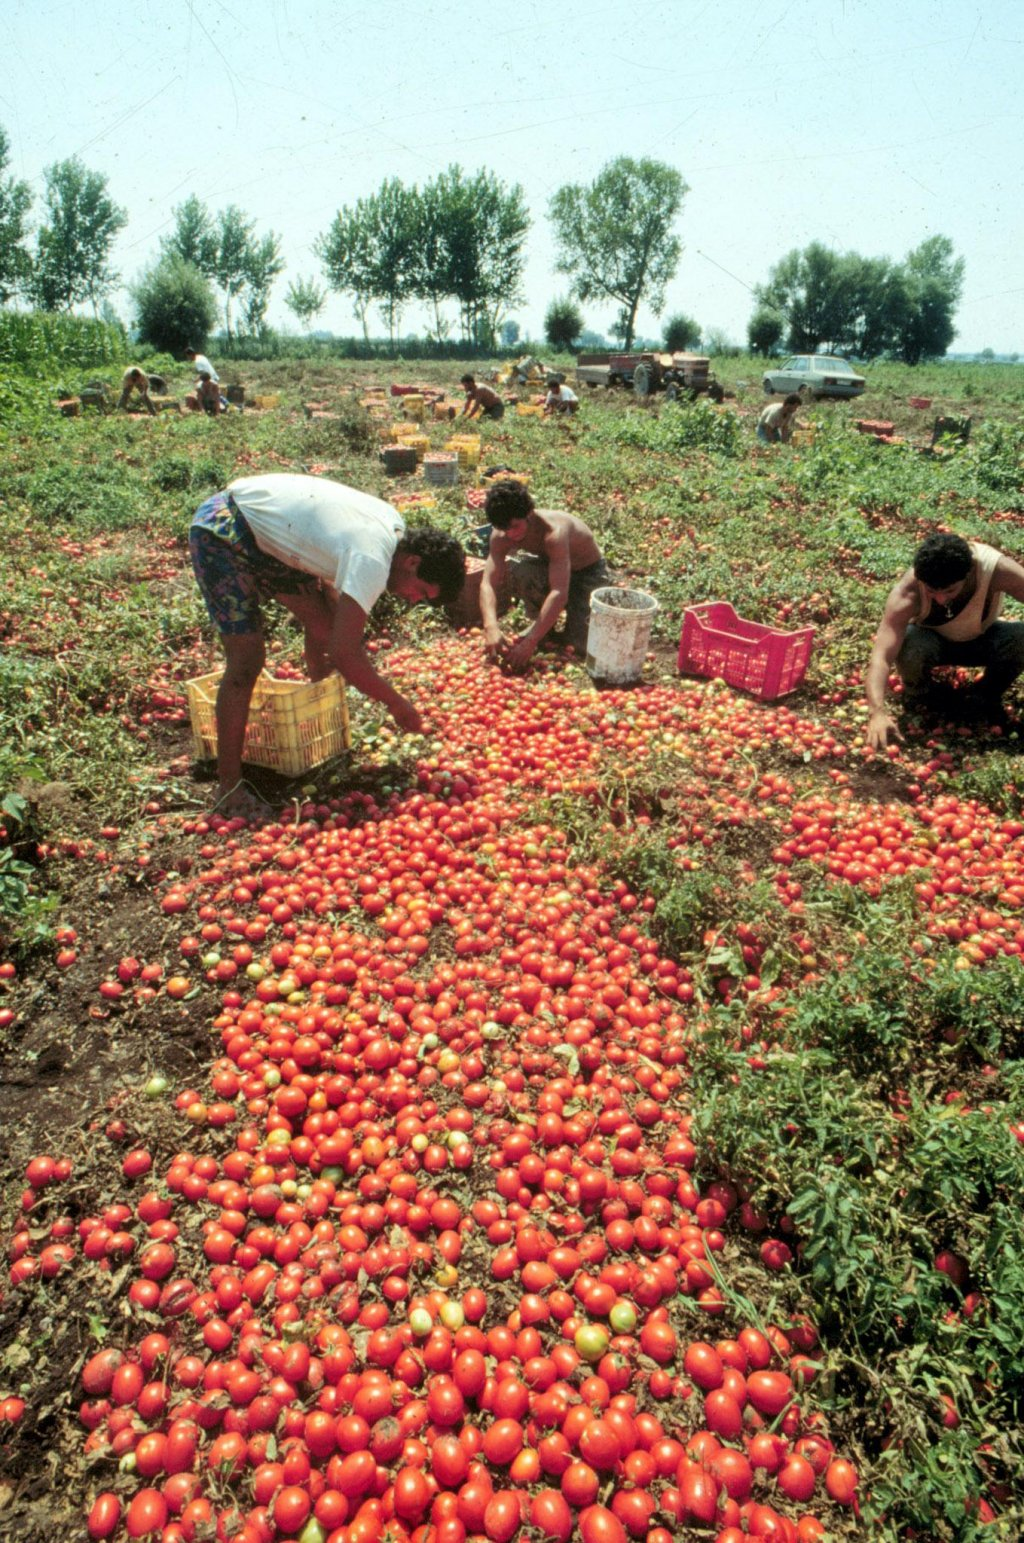 Farmworkers harvesting tomatoes | Photo: ANSA/Ciro Fusco/GID